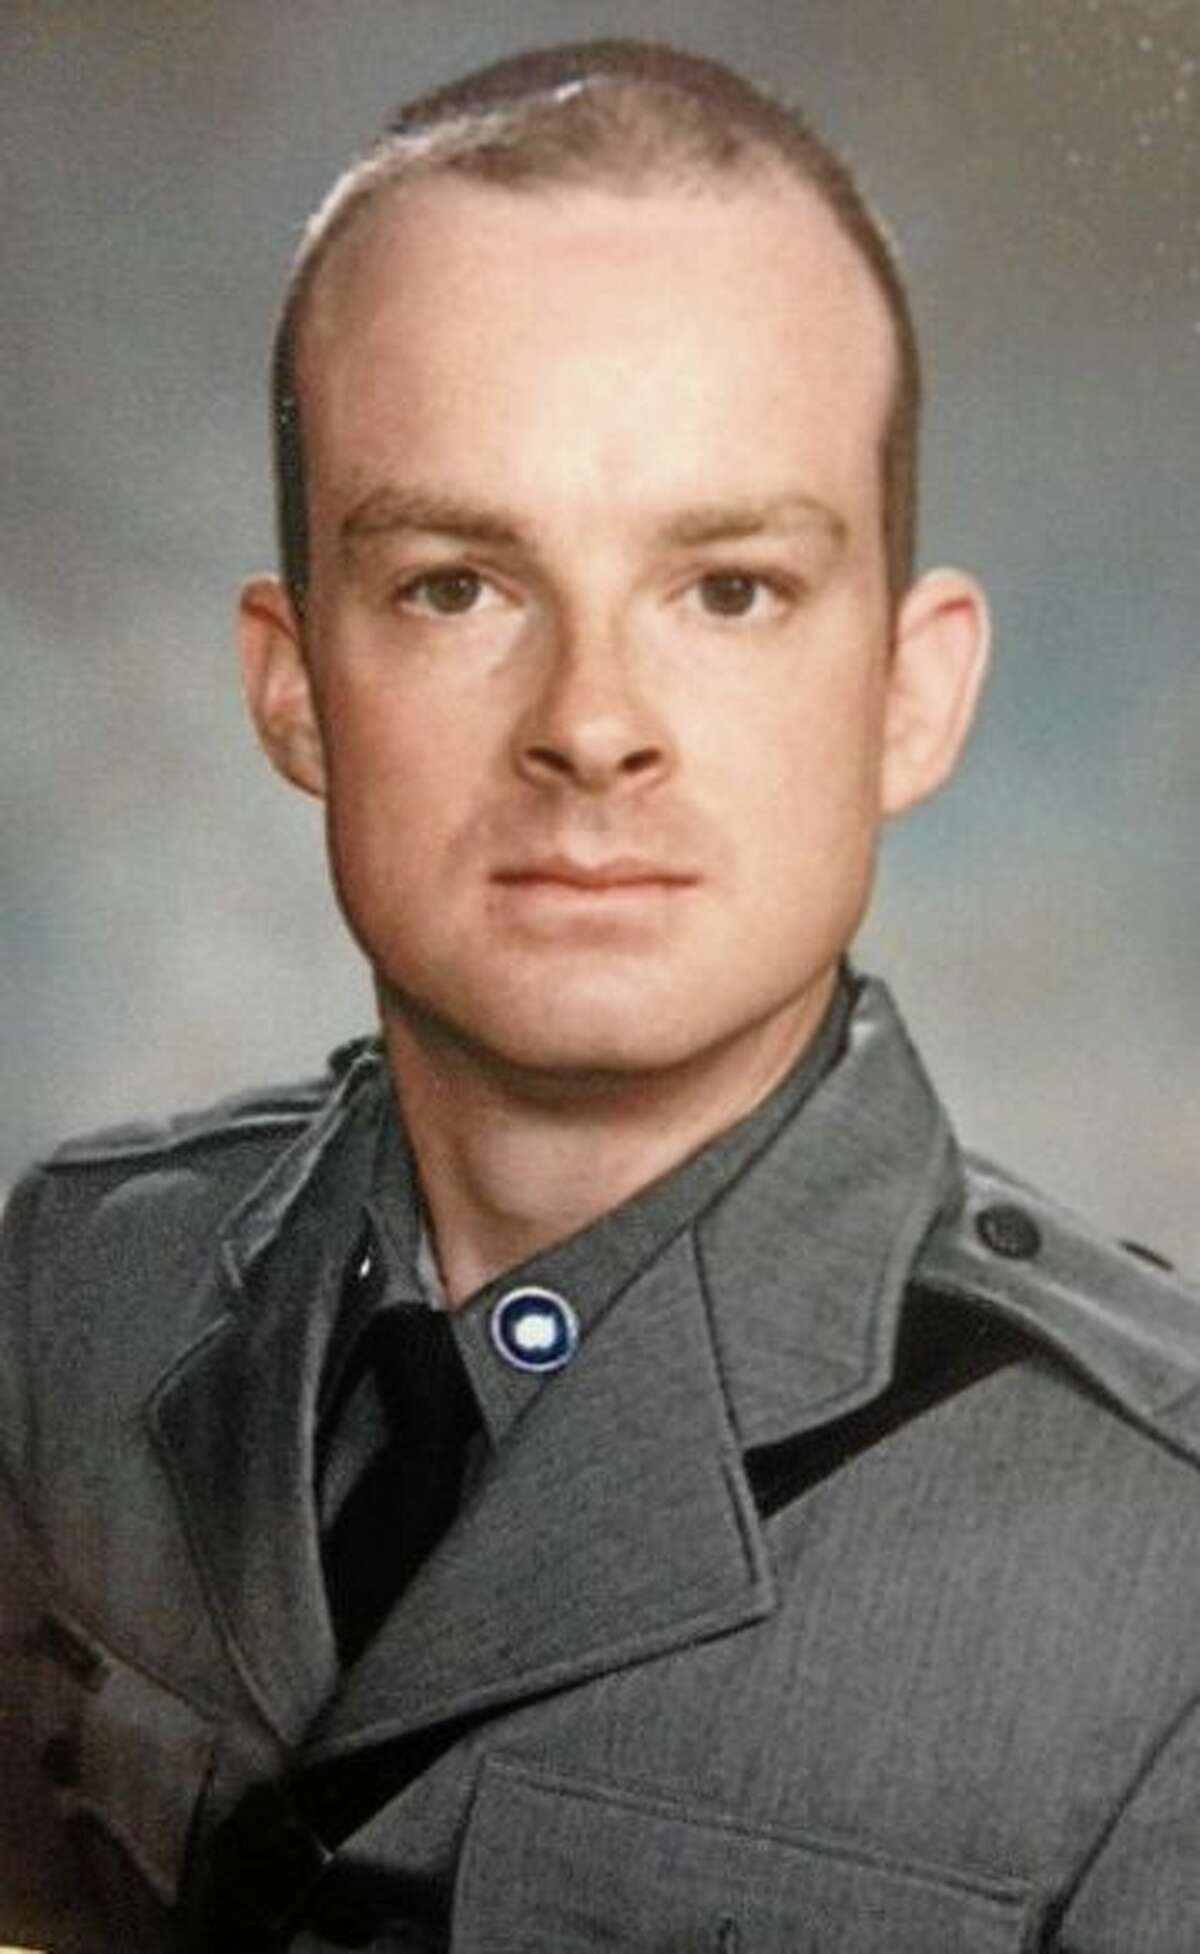 This undated photo provided by the New York State Police, shows Trooper Christopher Skinner, who was struck by a vehicle and killed, Thursday, May 29, 2014, while he was conducting a traffic stop outside his patrol car on Interstate 81 north of Binghamton, N.Y. The driver of the car that struck him was apprehended after pulling over and fleeing into near-by woods. (AP Photo/New York State Police)